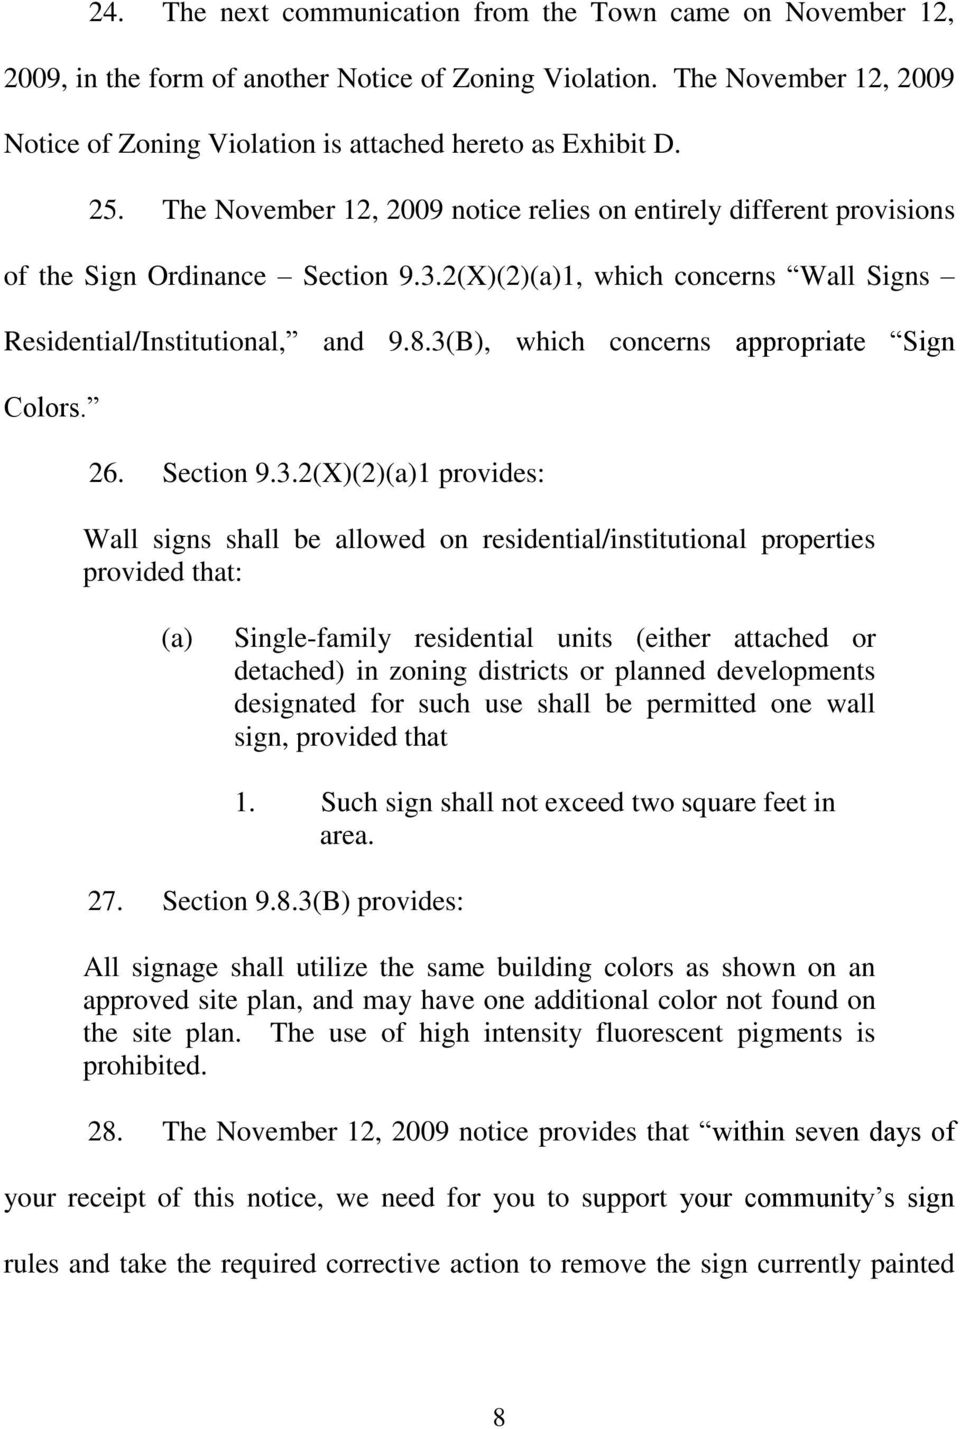 3(B), which concerns appropriate Sign Colors. 26. Section 9.3.2(X)(2)(a)1 provides: Wall signs shall be allowed on residential/institutional properties provided that: (a) Single-family residential